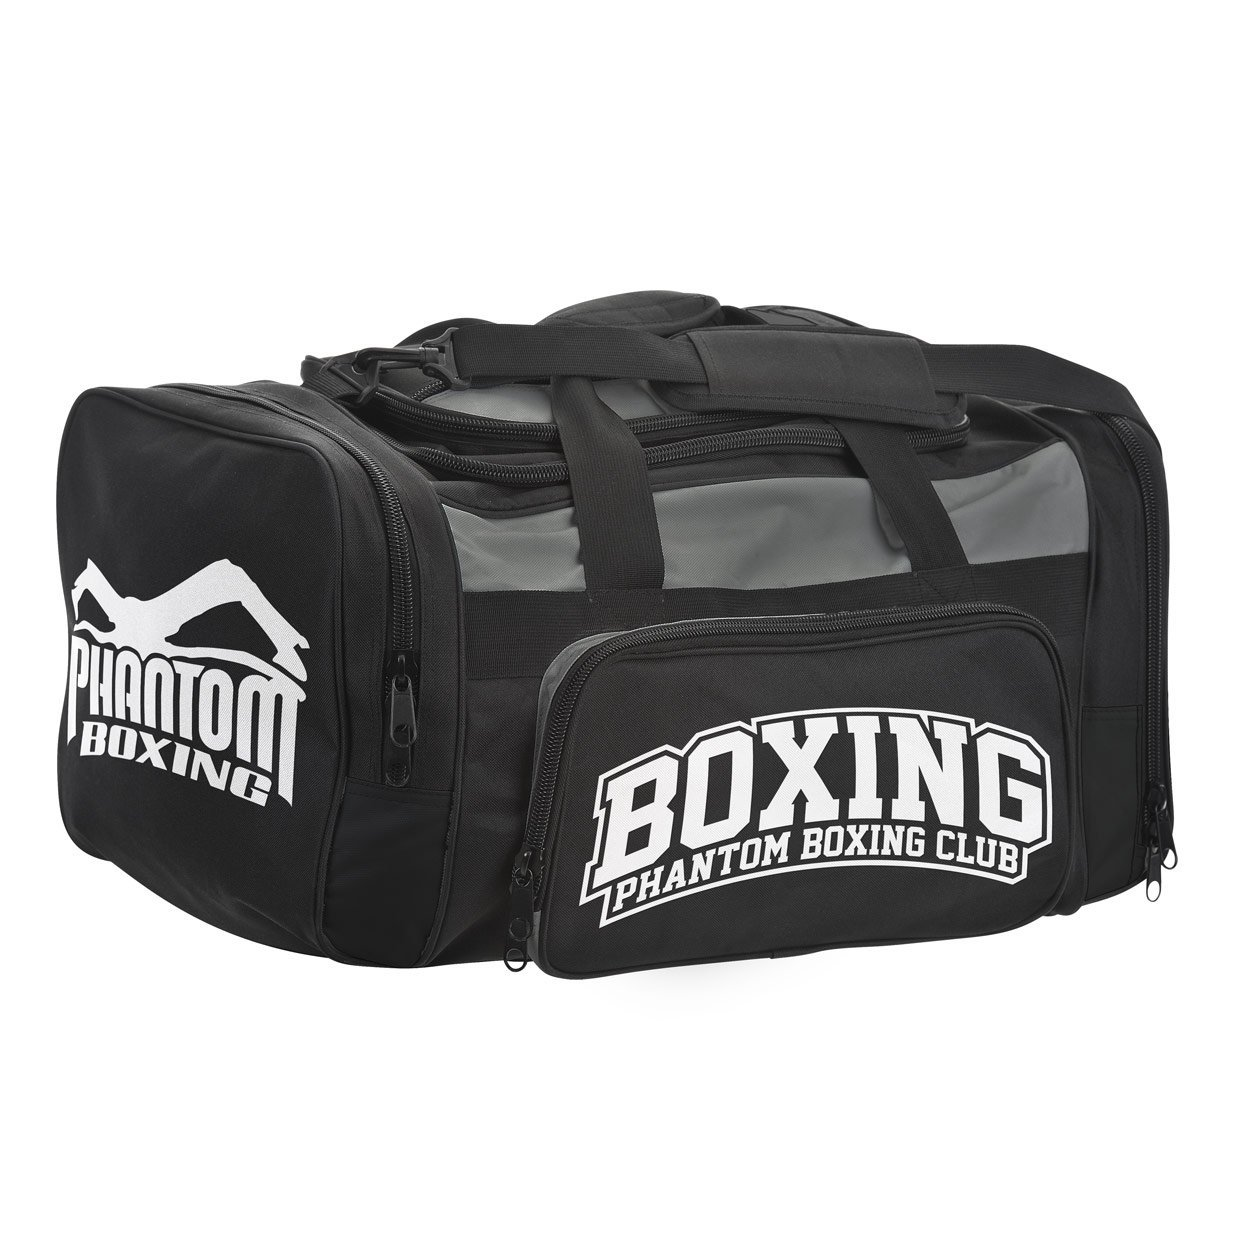 Sac de sport Phantom Athletics Boxing